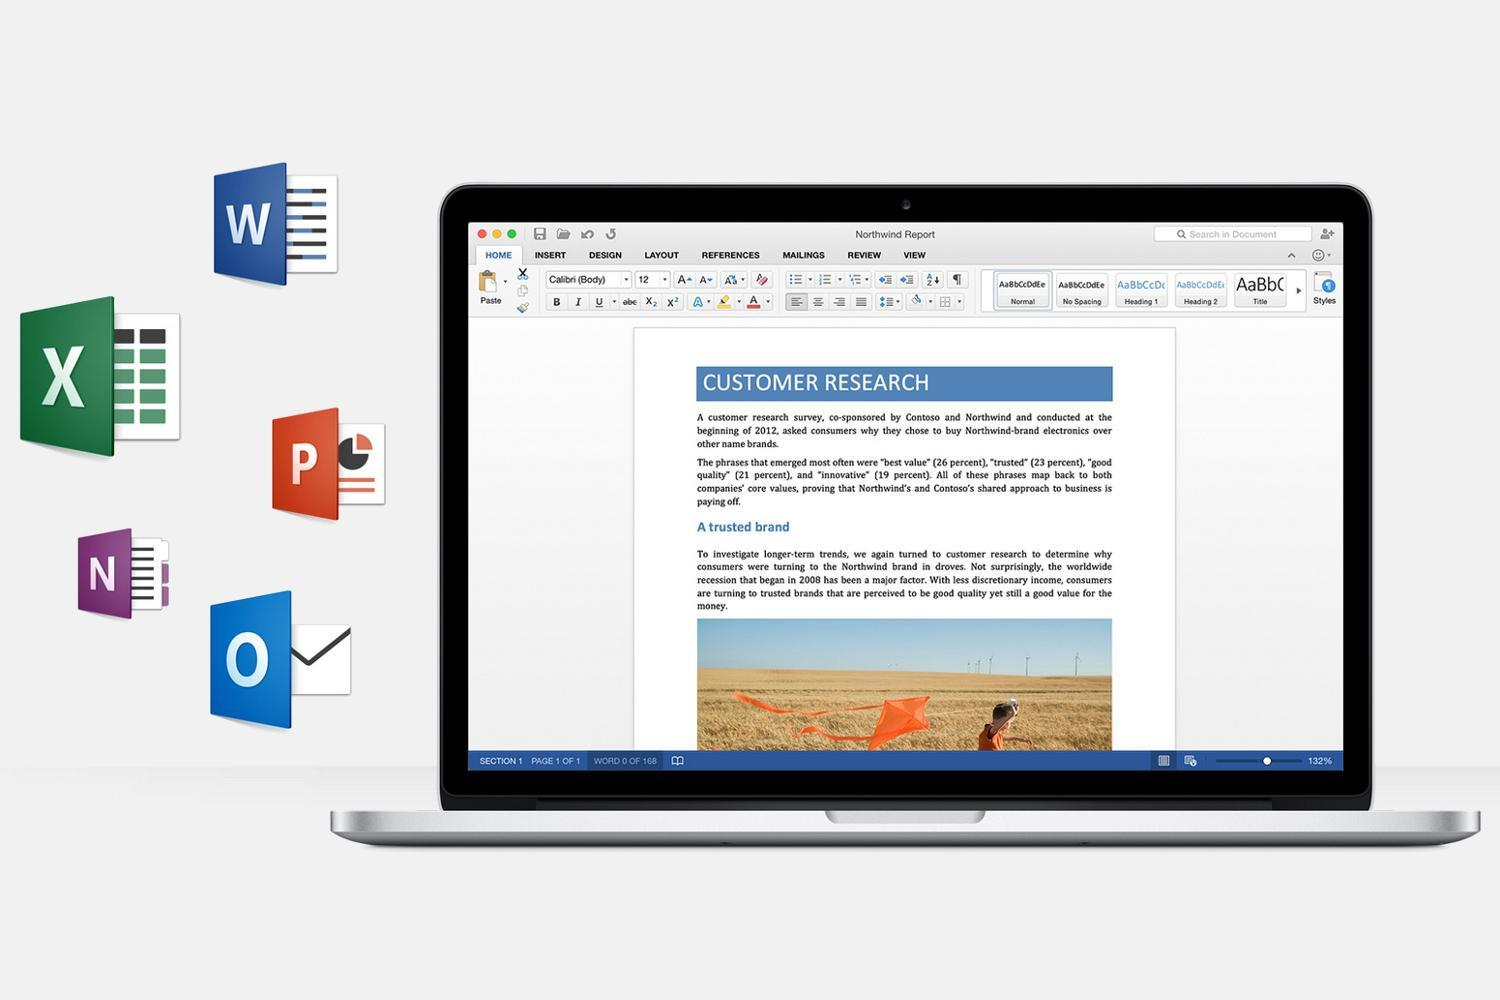 Outlook 2016 for Mac supports Google Calendar and Contacts